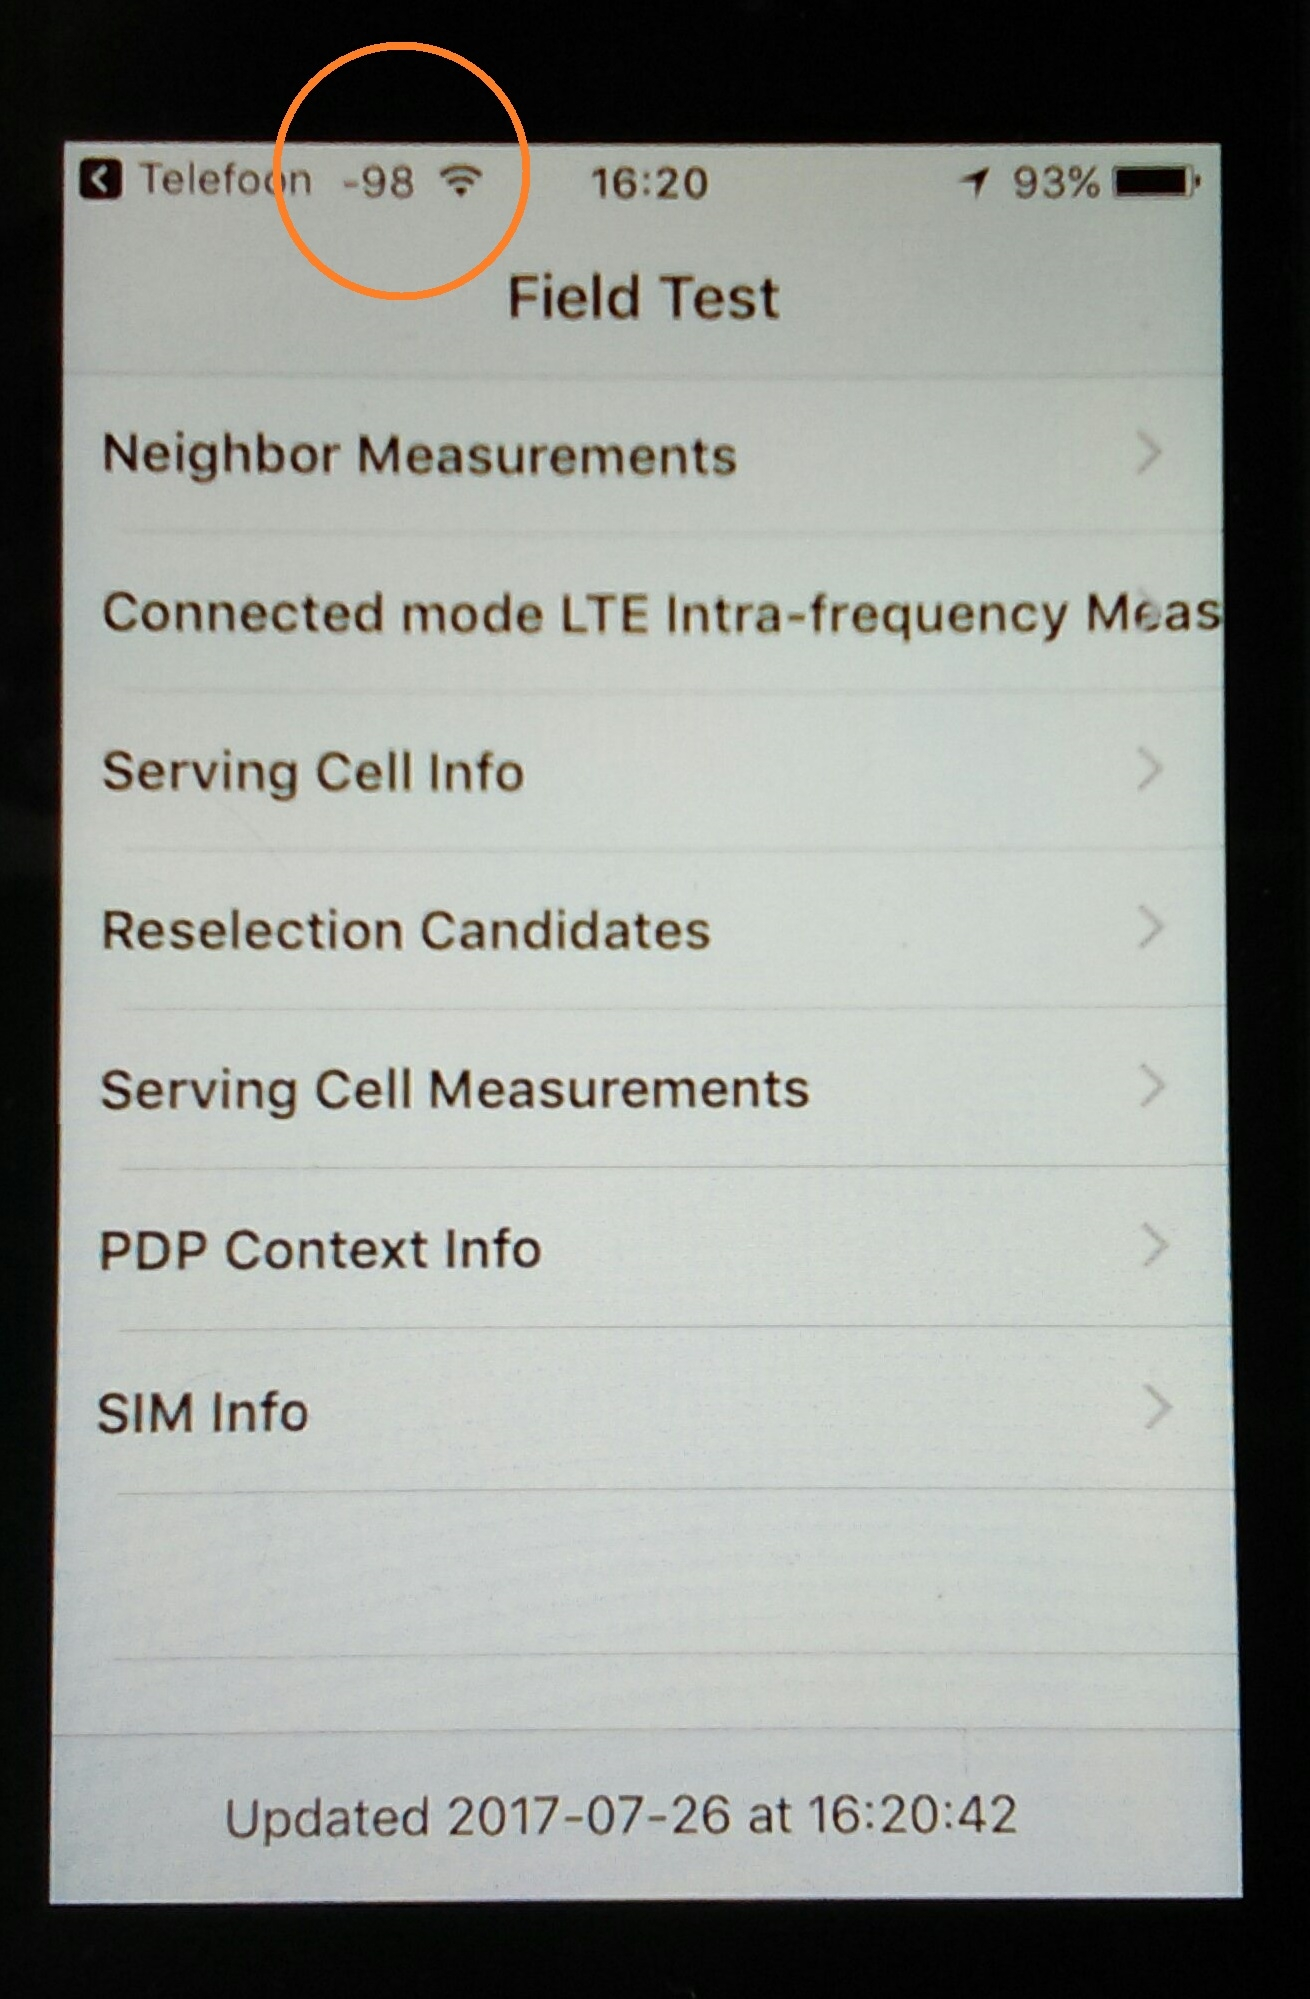 iPhone field measurement screen display